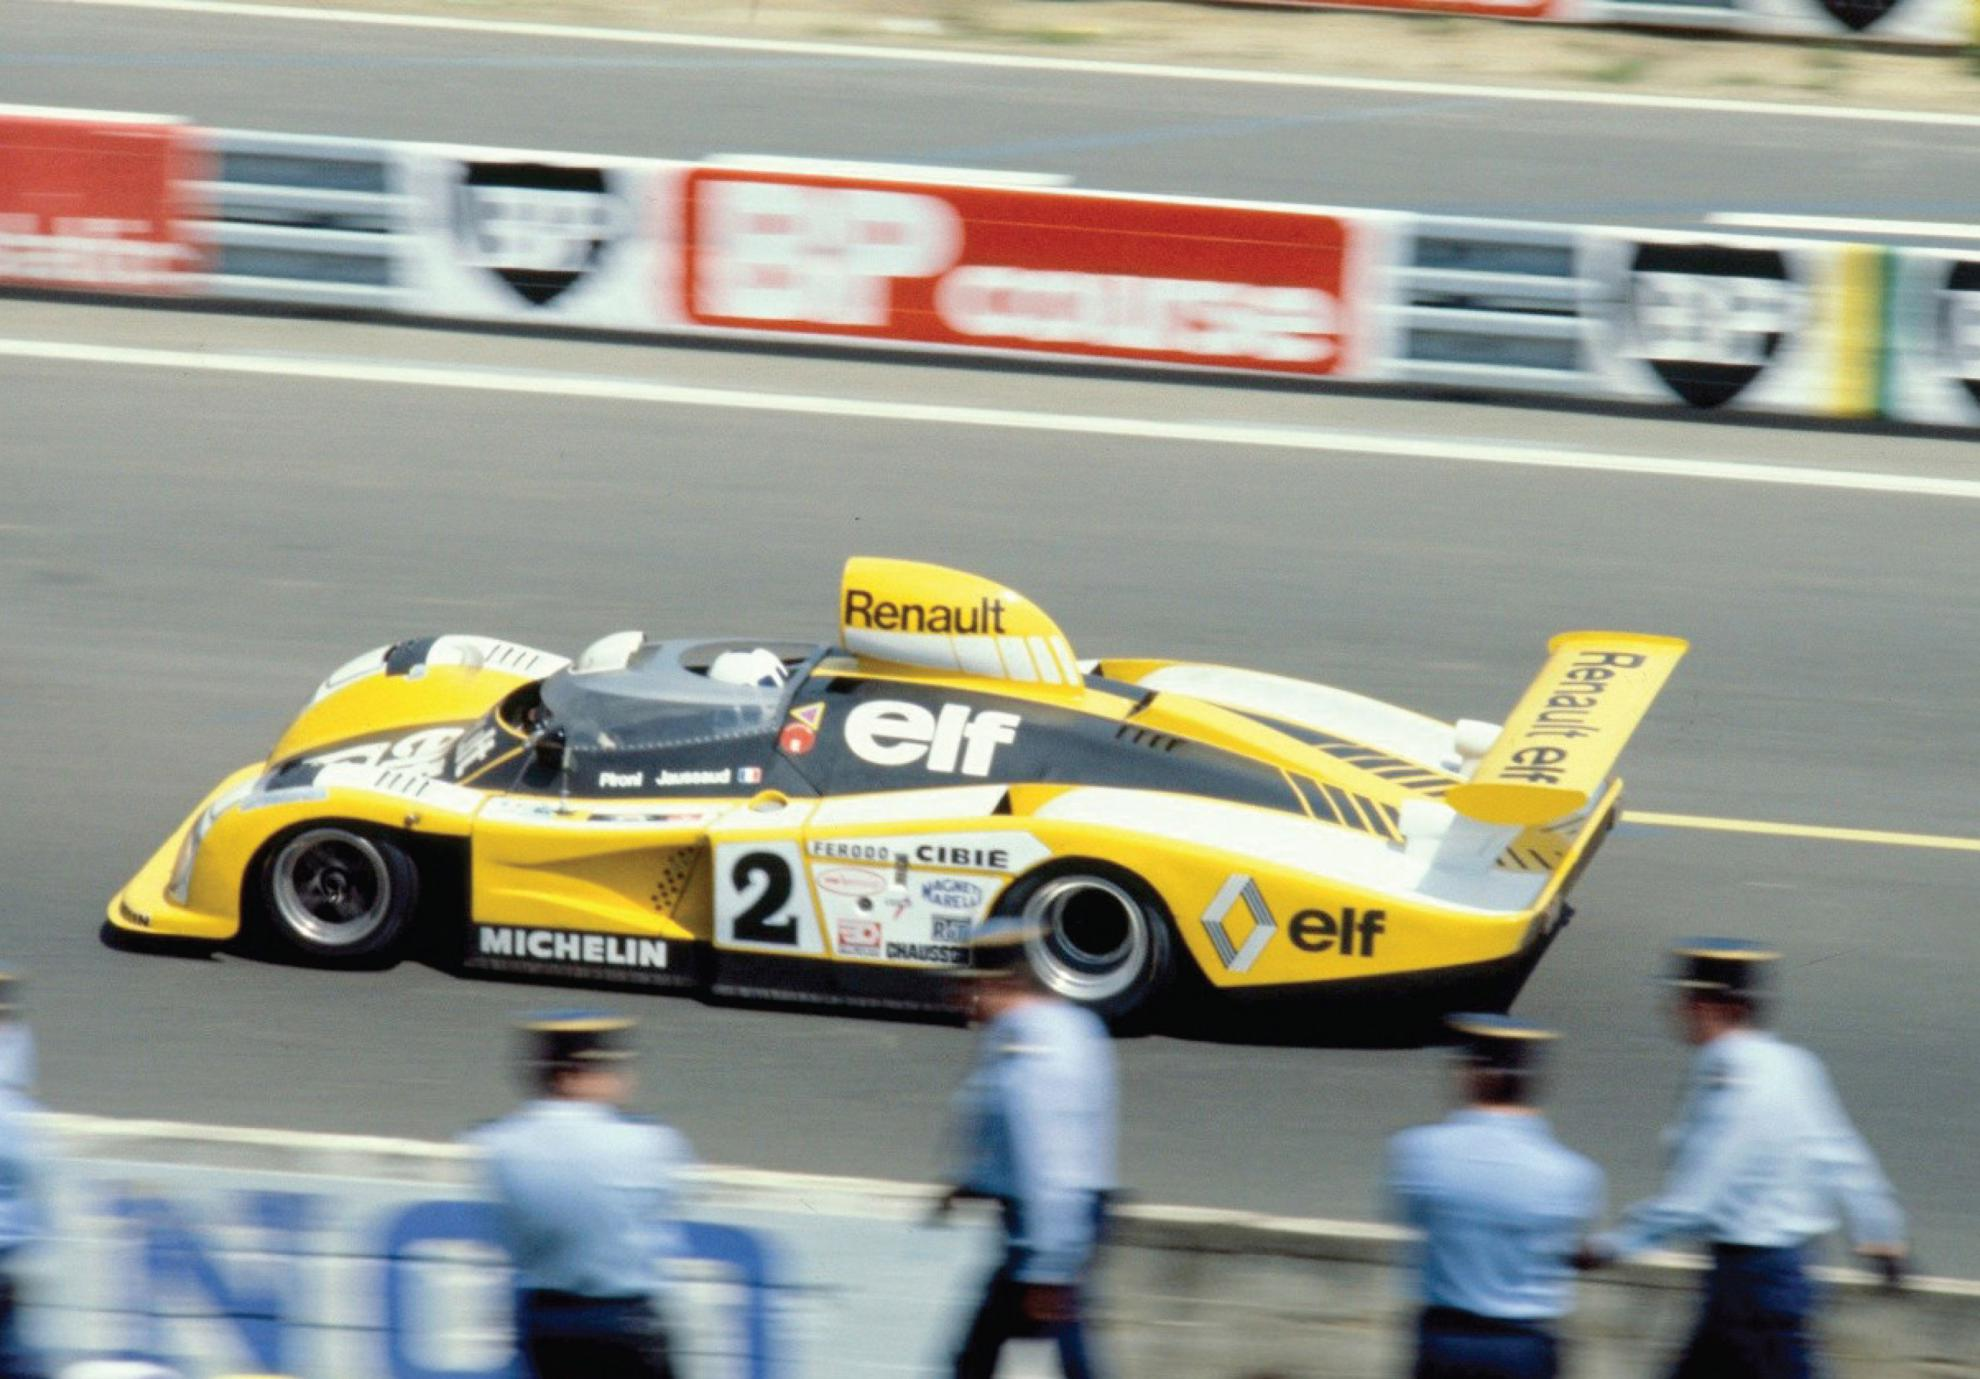 Alpine A442B Le Mans car